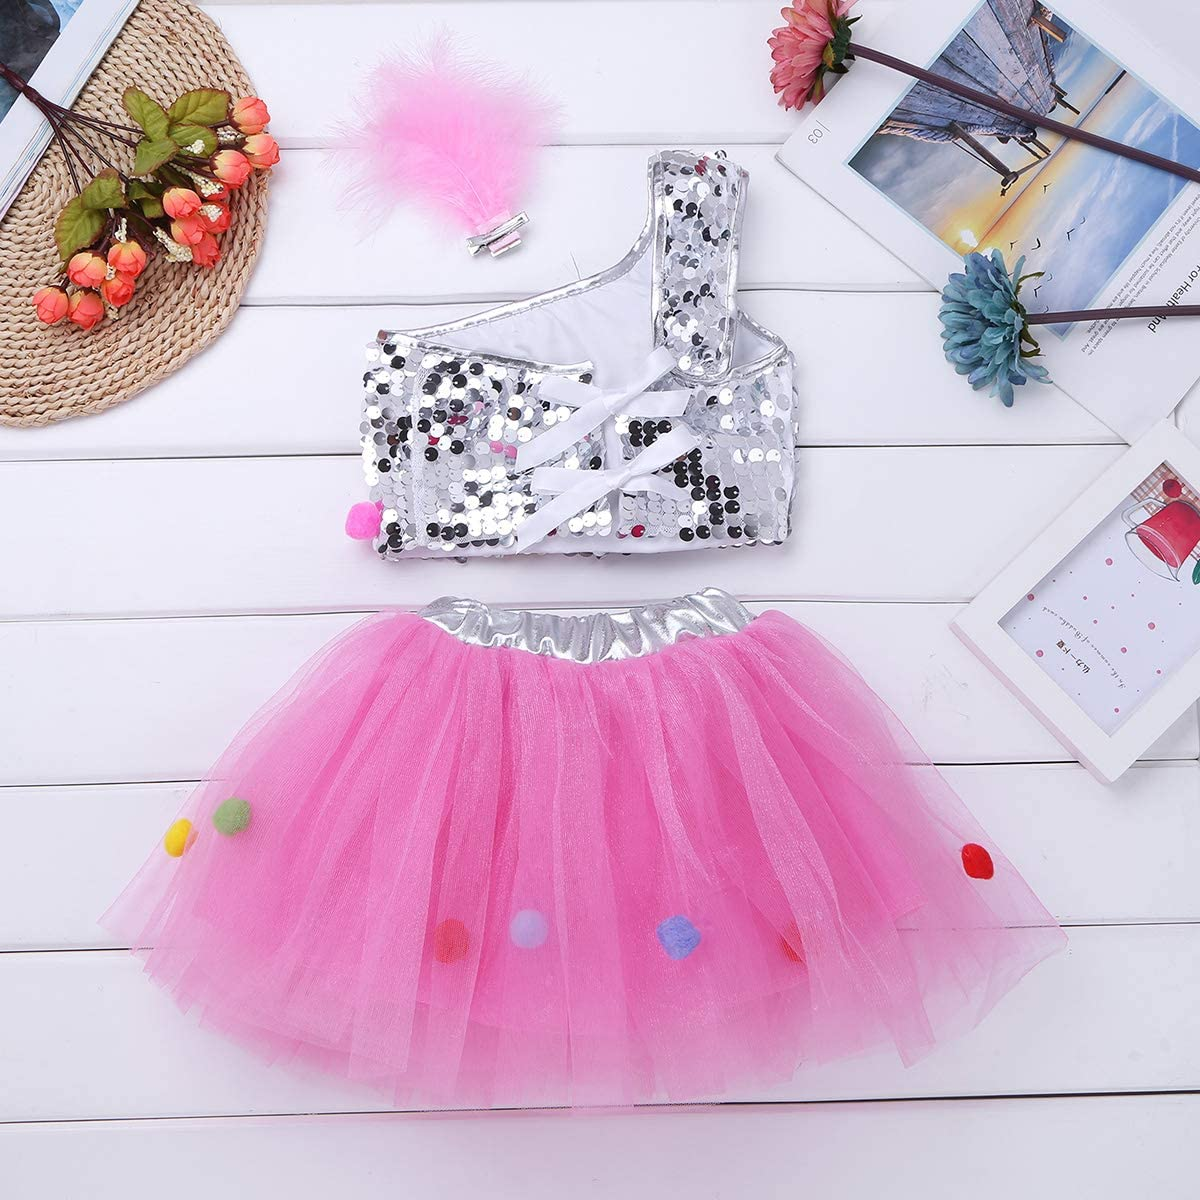 vastwit Toddler Kids Girls Sequined Tutu Dress Sleeveless Colorful Frock Costume and Hair Hoop for Dance